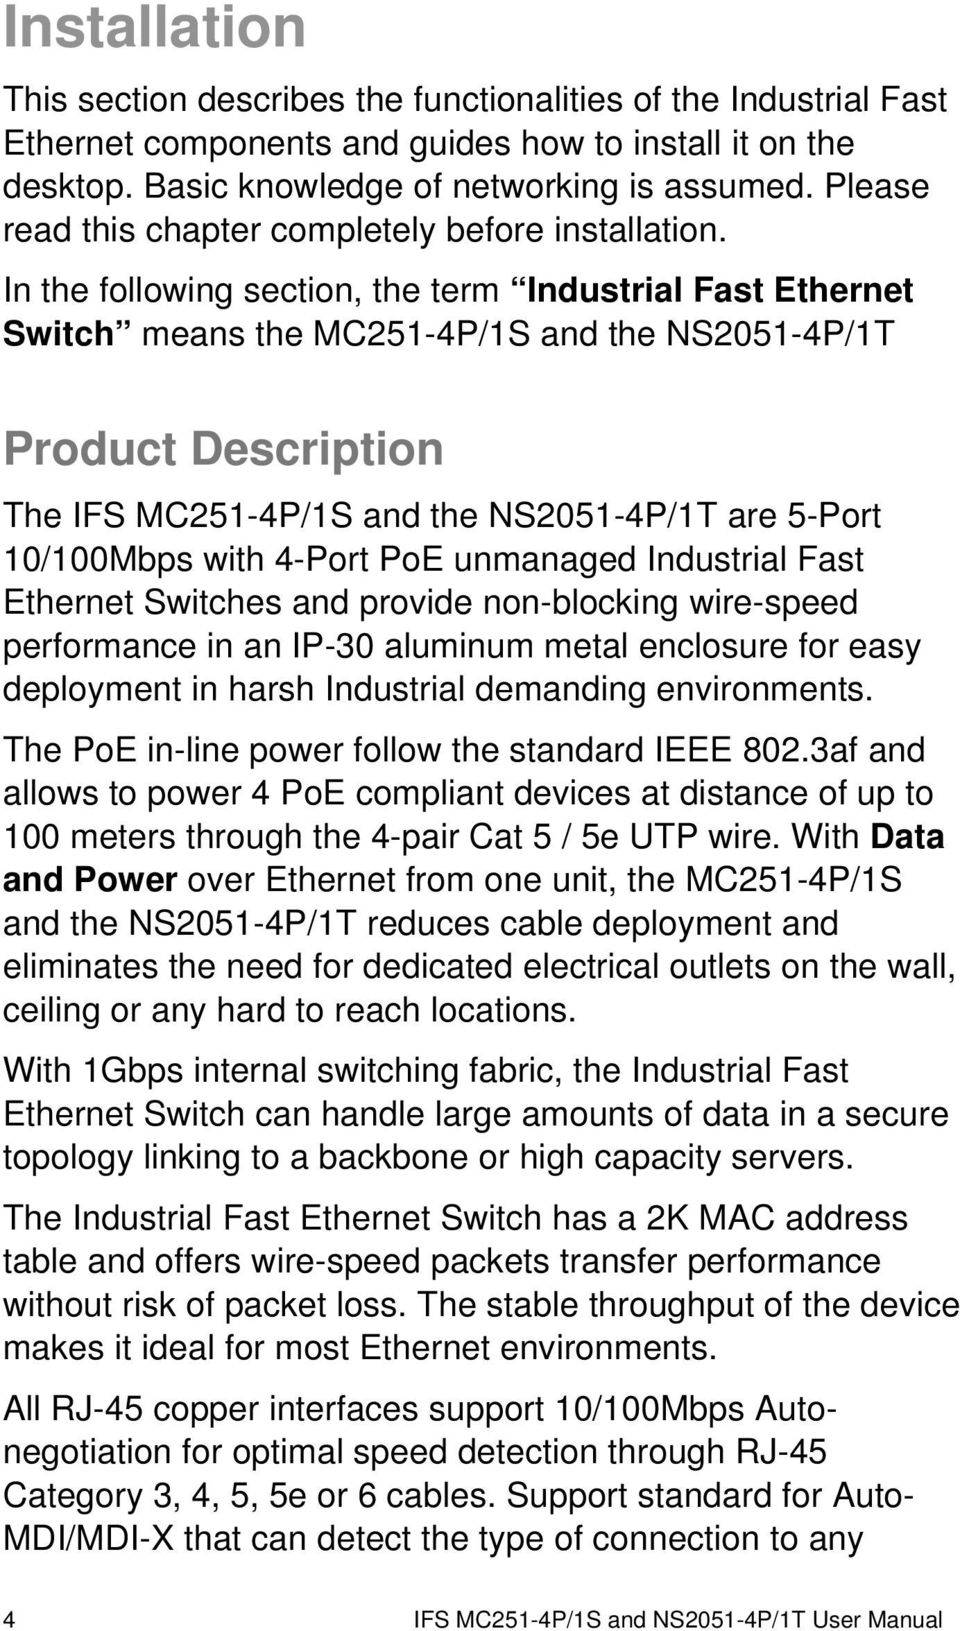 In the following section, the term Industrial Fast Ethernet Switch means the MC251-4P/1S and the NS2051-4P/1T Product Description The IFS MC251-4P/1S and the NS2051-4P/1T are 5-Port 10/100Mbps with